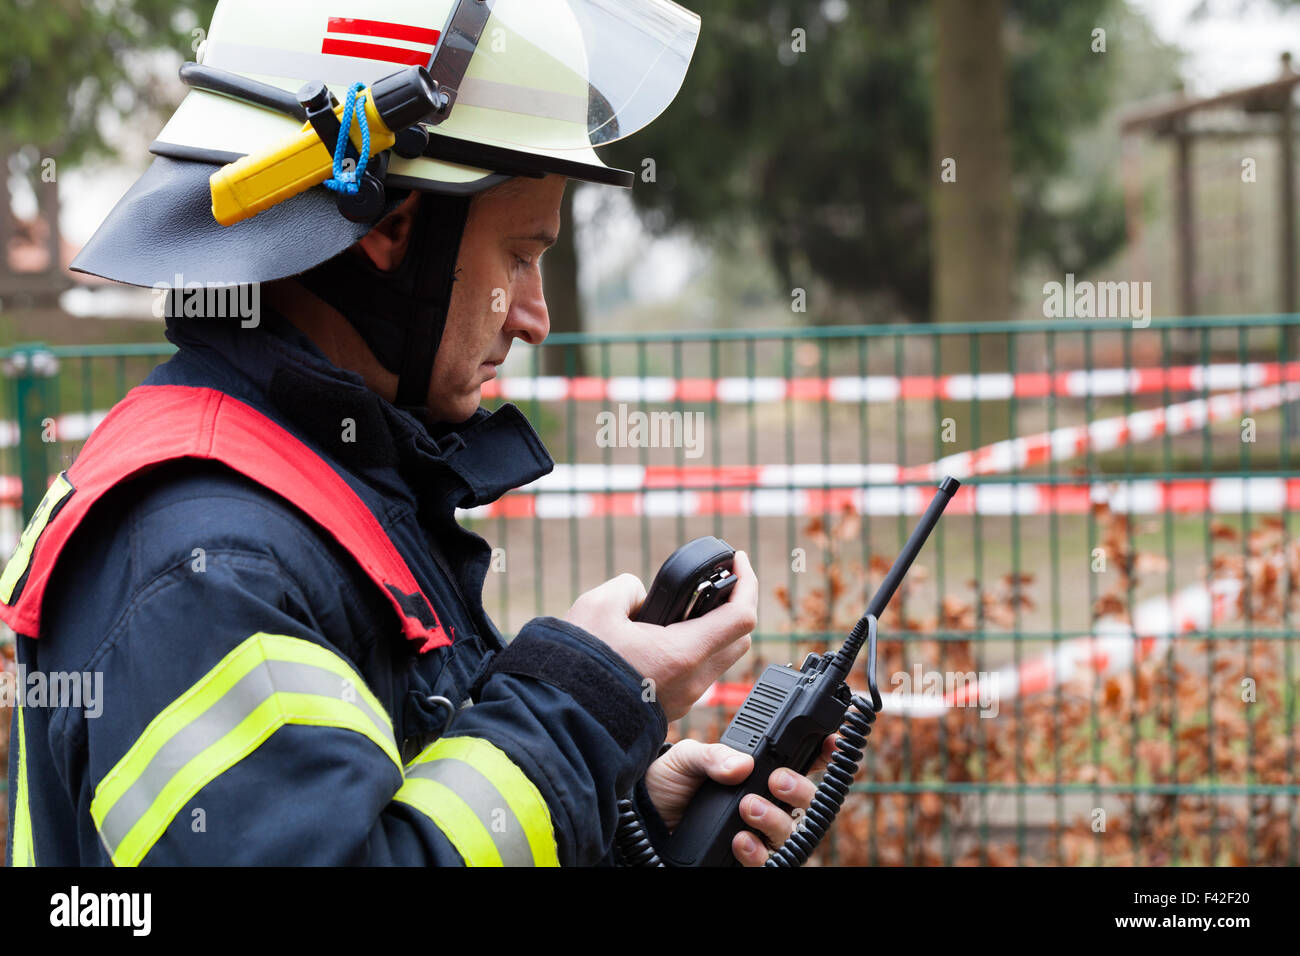 Fireman in action during the spark. - Stock Image